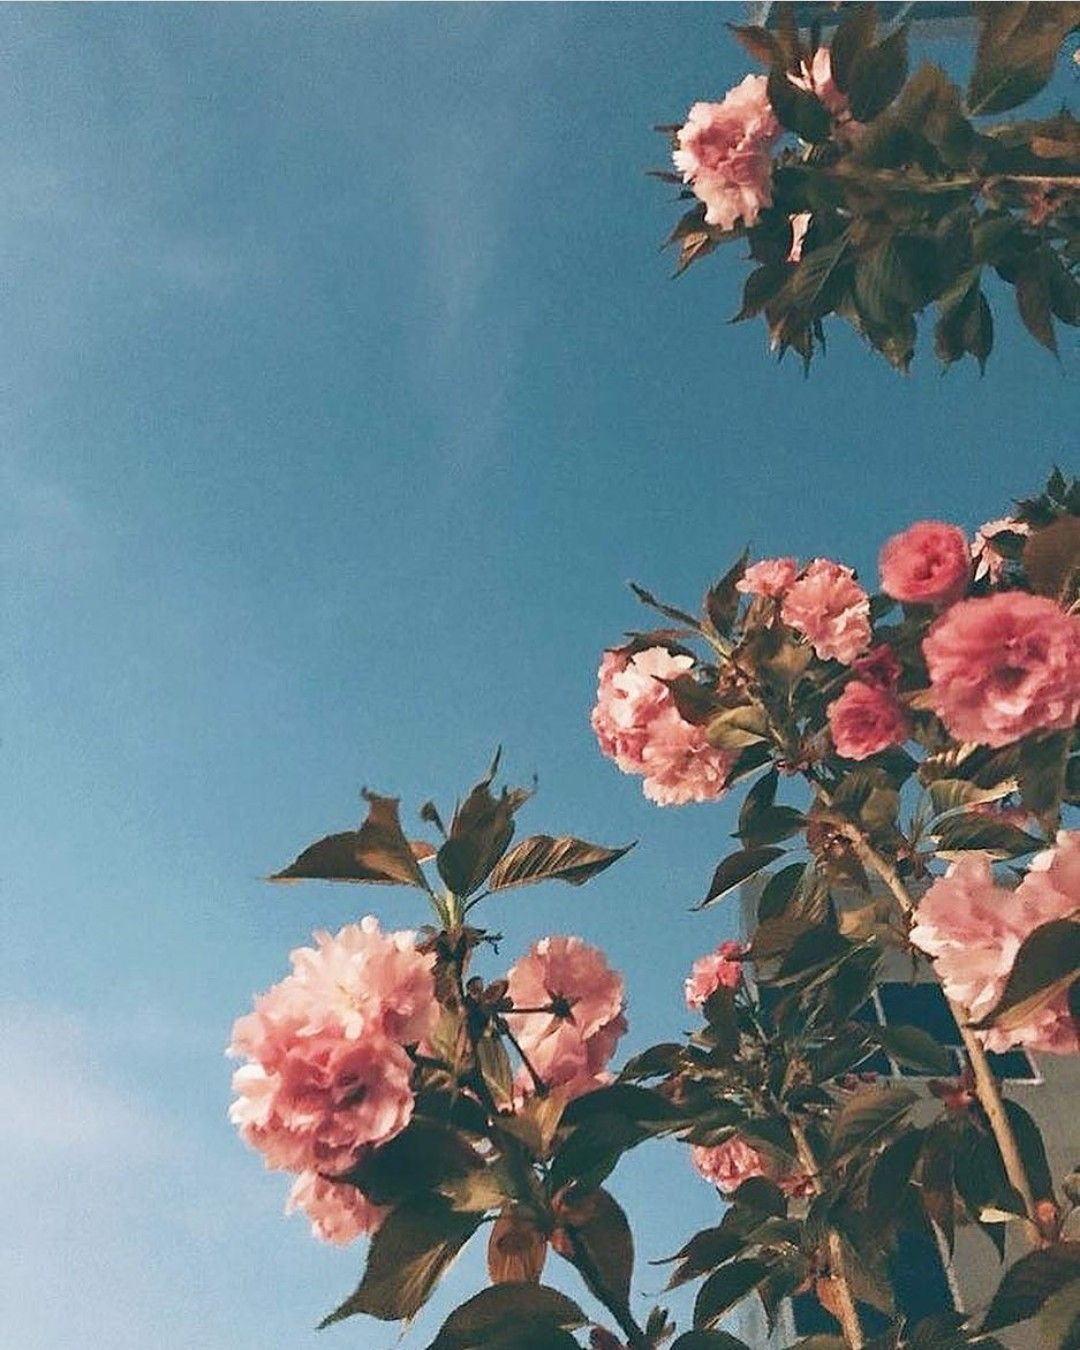 Aesthetic Pink Flower Wallpapers Top Free Aesthetic Pink Flower Backgrounds Wallpaperaccess